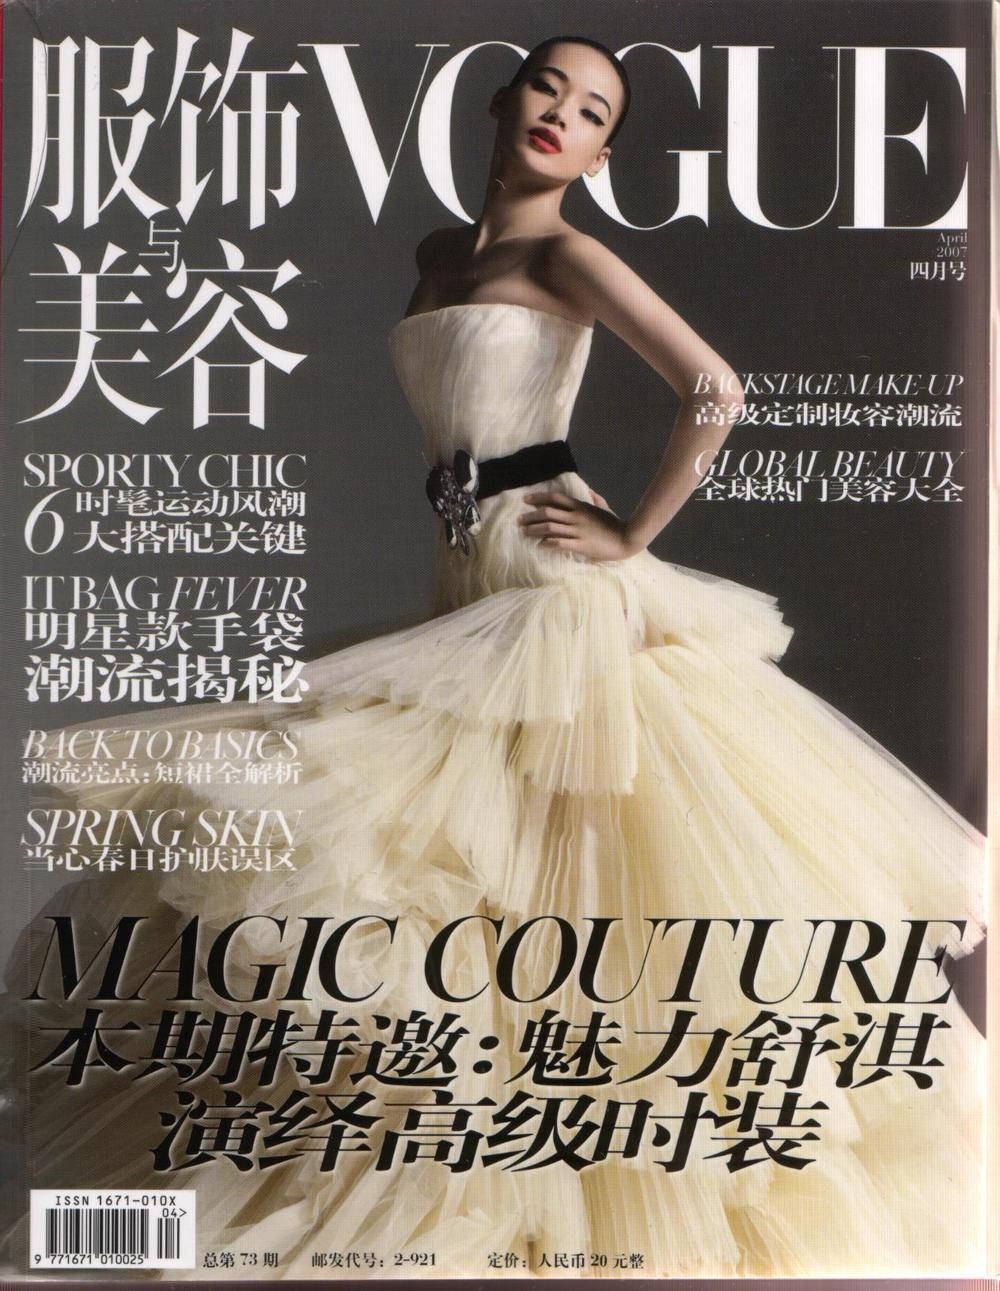 voguechinaapril07cover.jpg